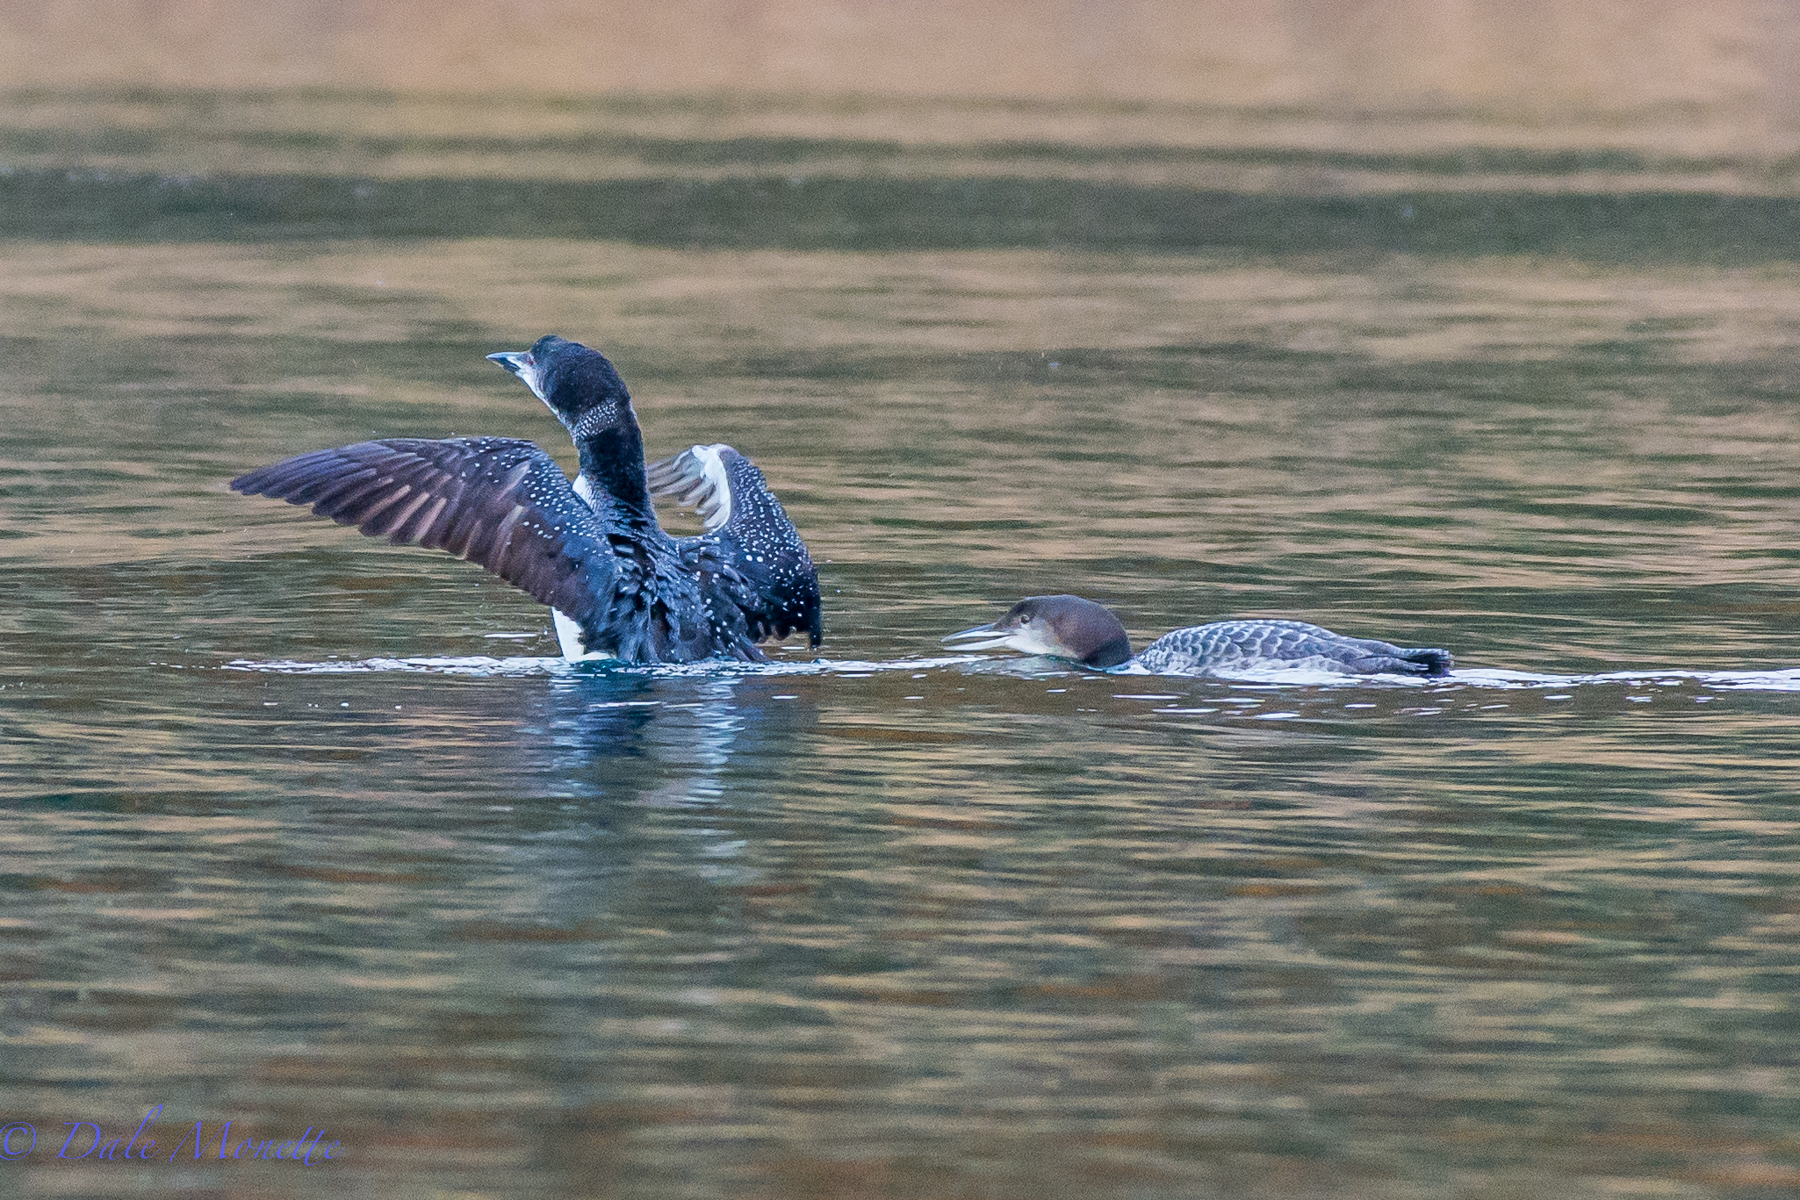 Booth the adult and the chick together early this morning on Quabbin.  10/30/15